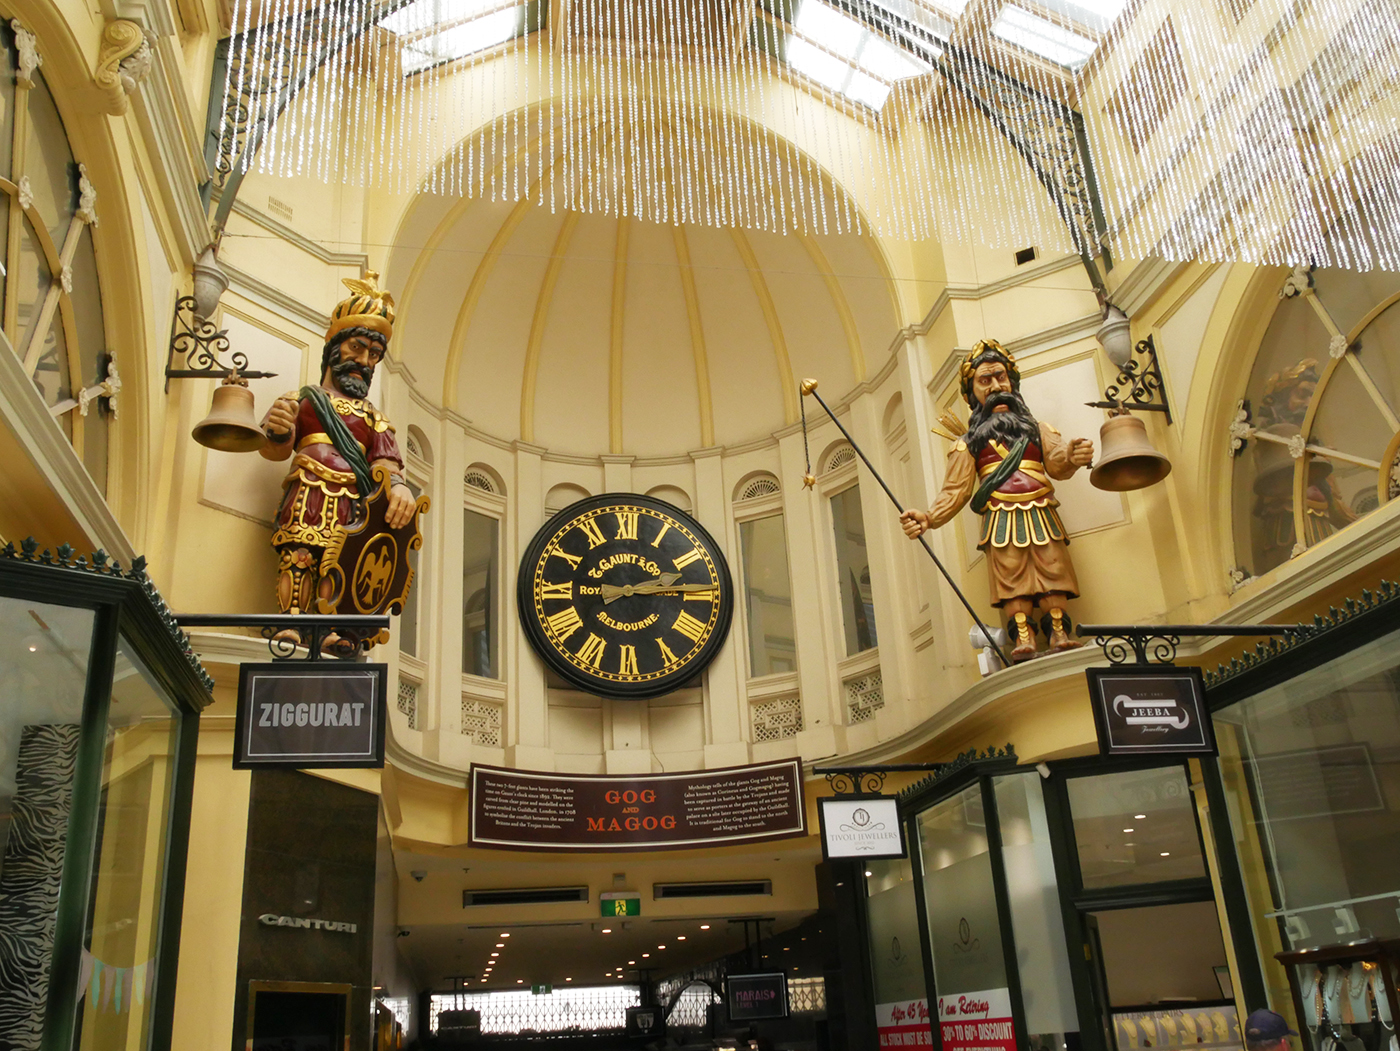 Gog and Magog, Royal Arcade